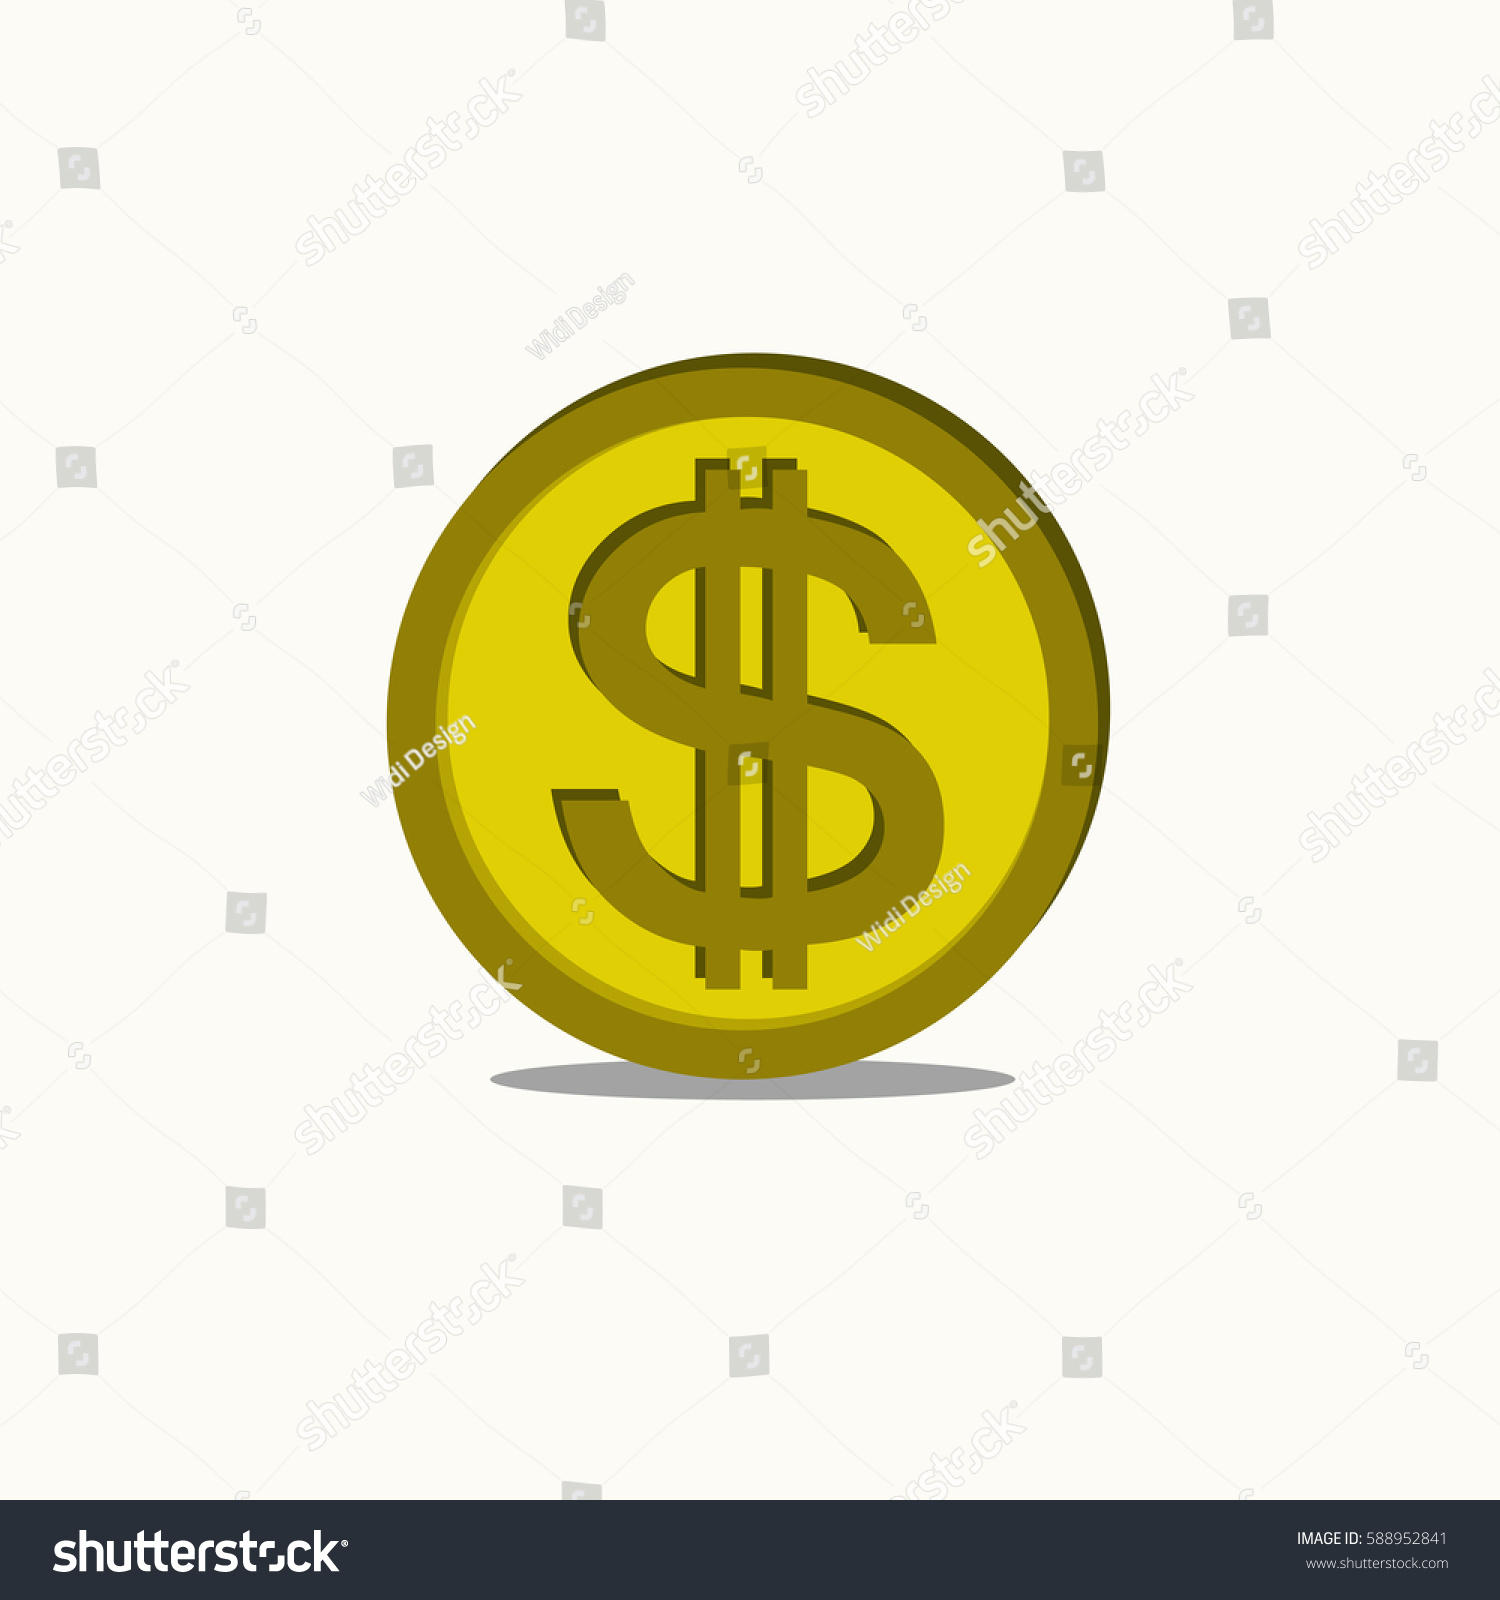 Dollar Coin Flat Design Icon Logo Stock Vector 588952841 ...